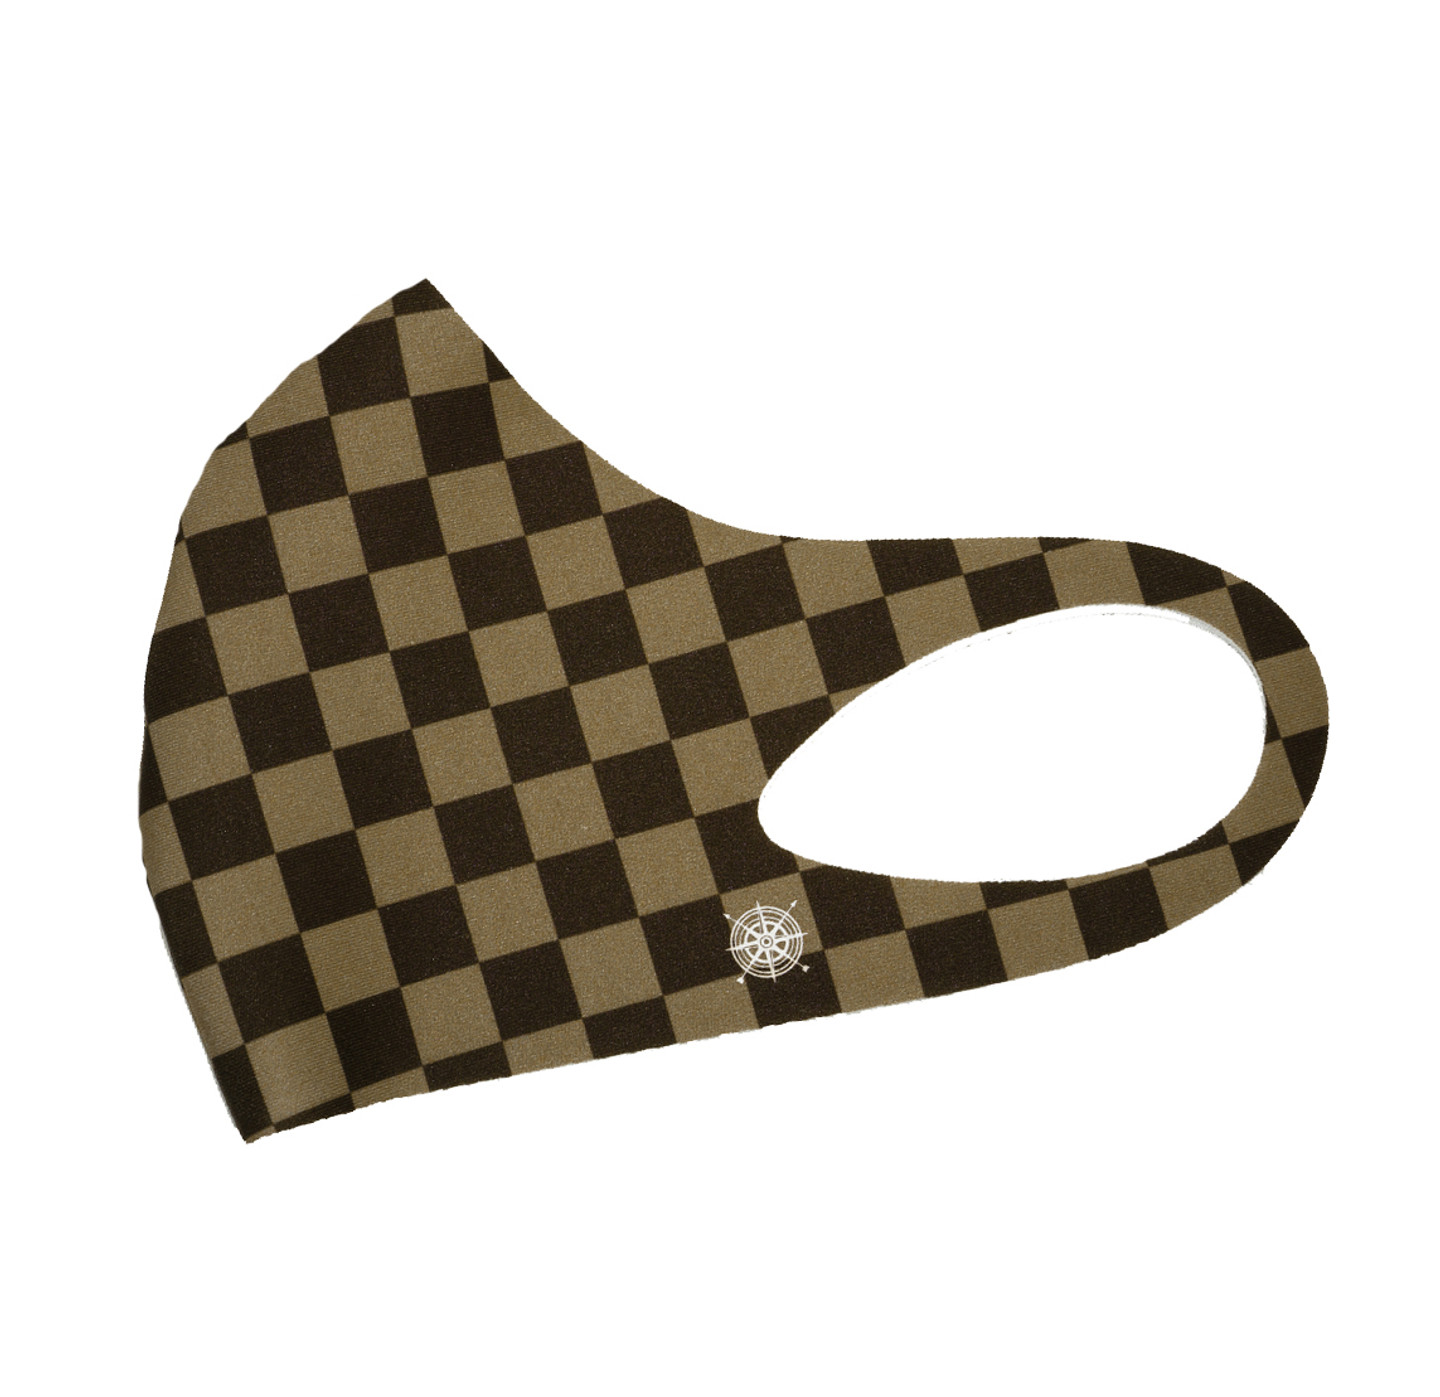 Pete Huntington Mask - Big Squares (Brown)